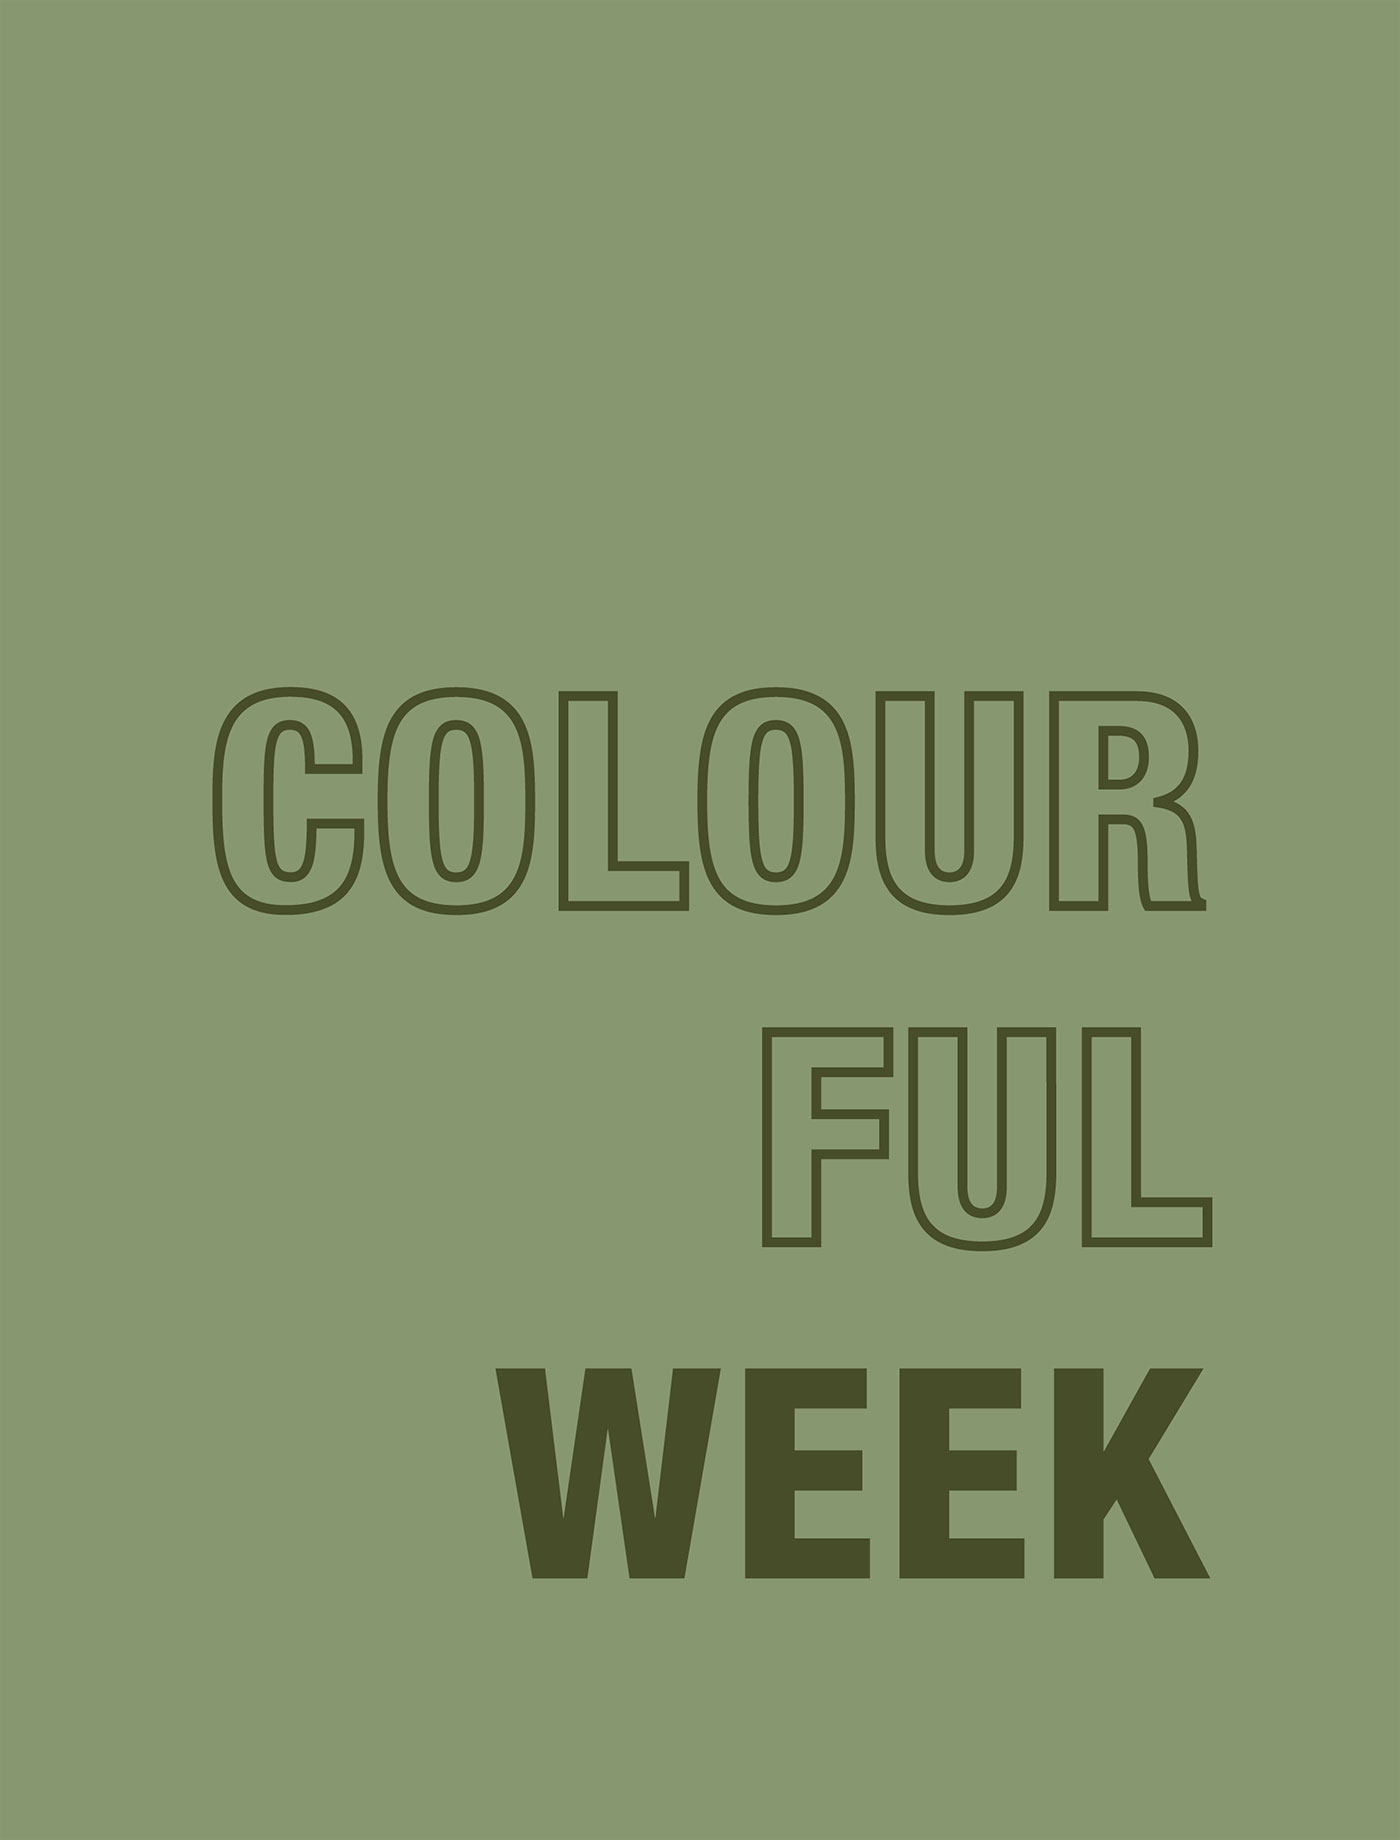 Colourful Week